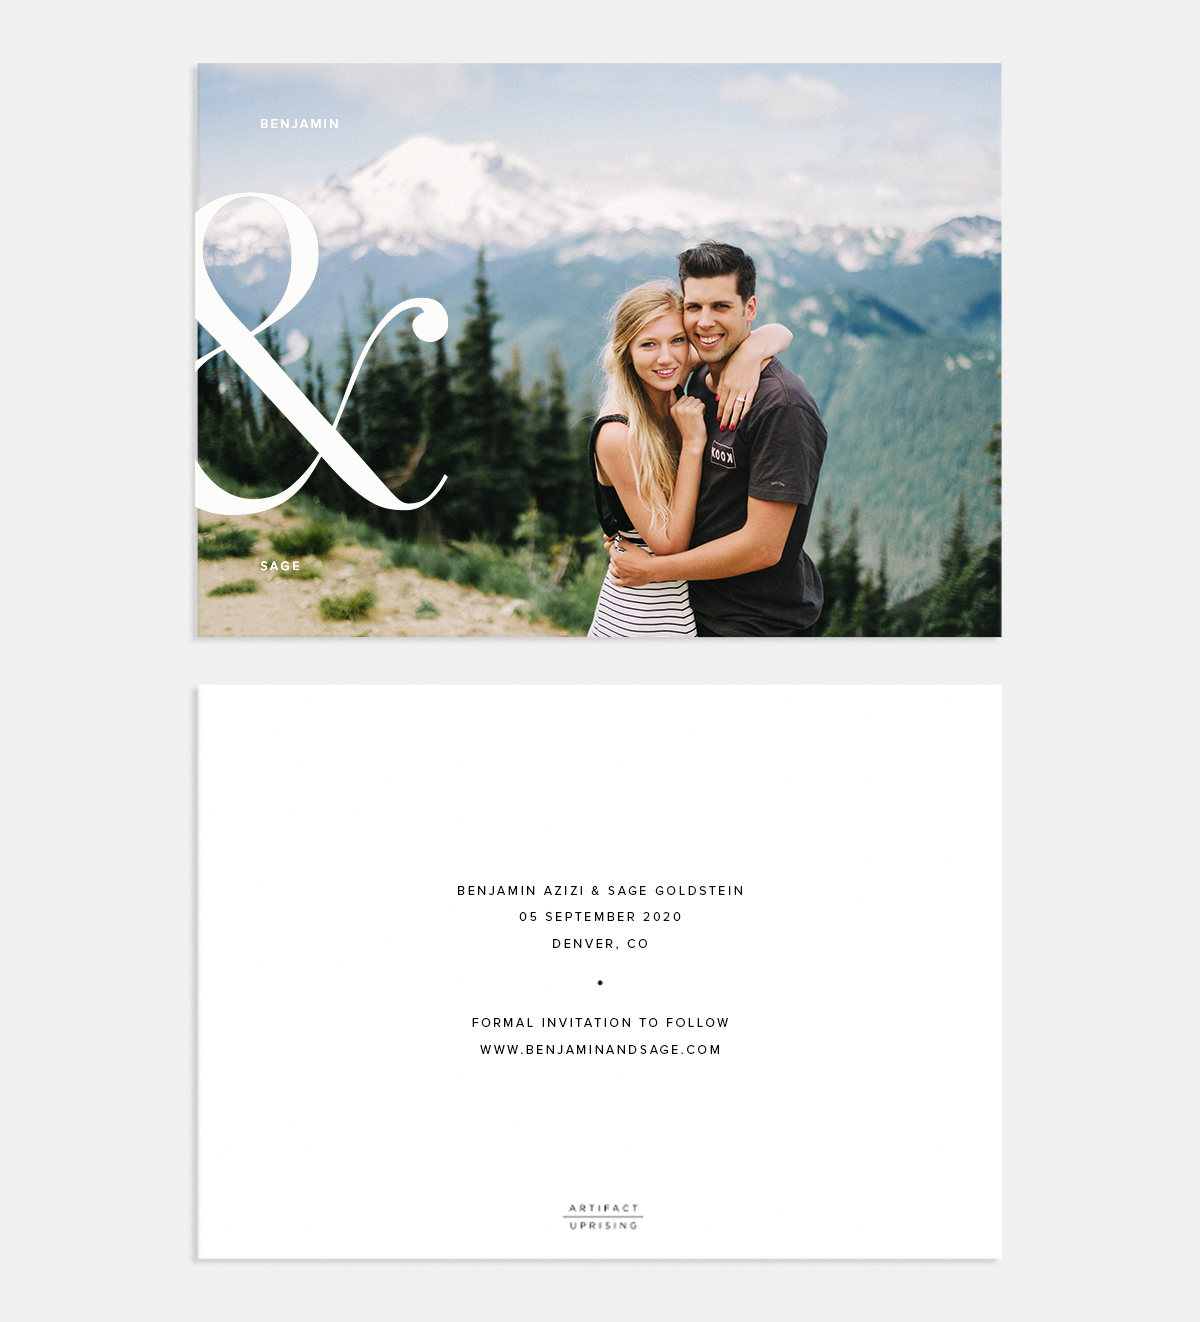 Ampersand Save the Date Card by Artifact Uprising